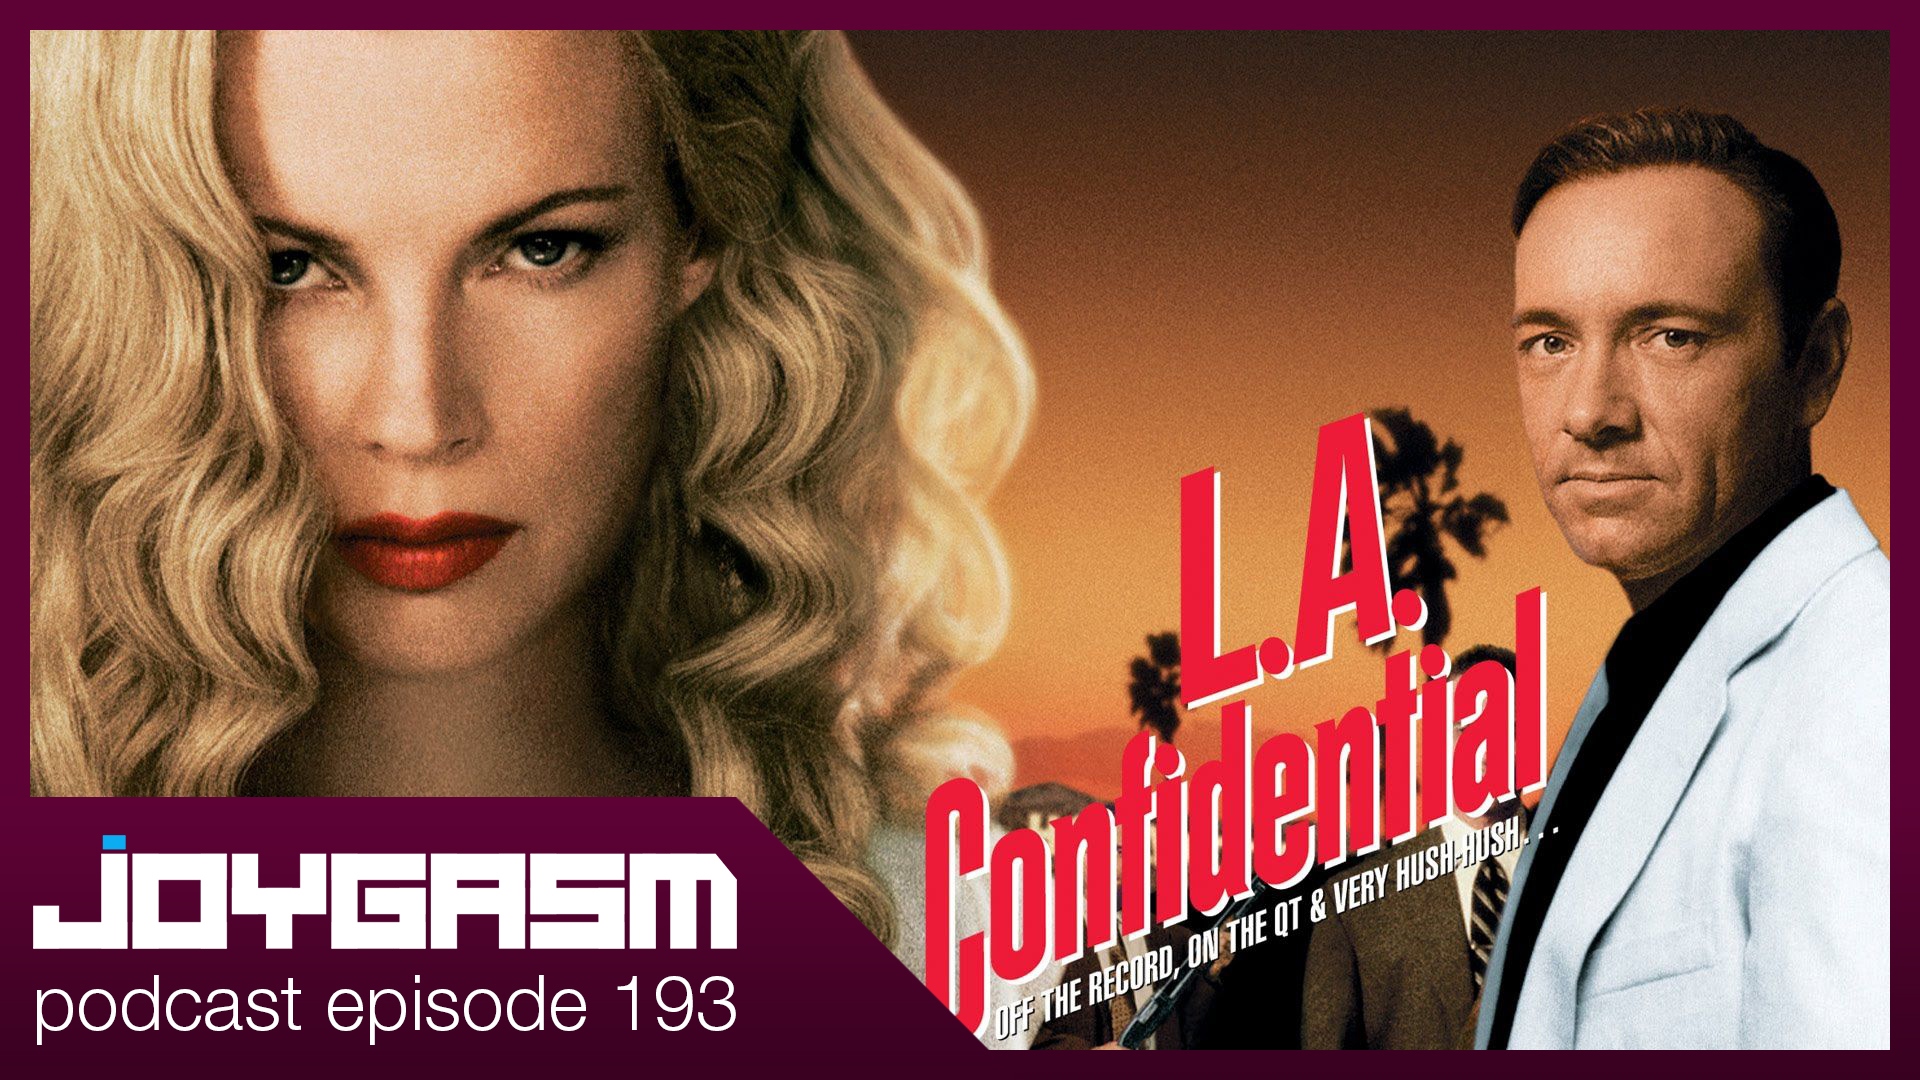 Ep. 193: L.A. Confidential Movie Review